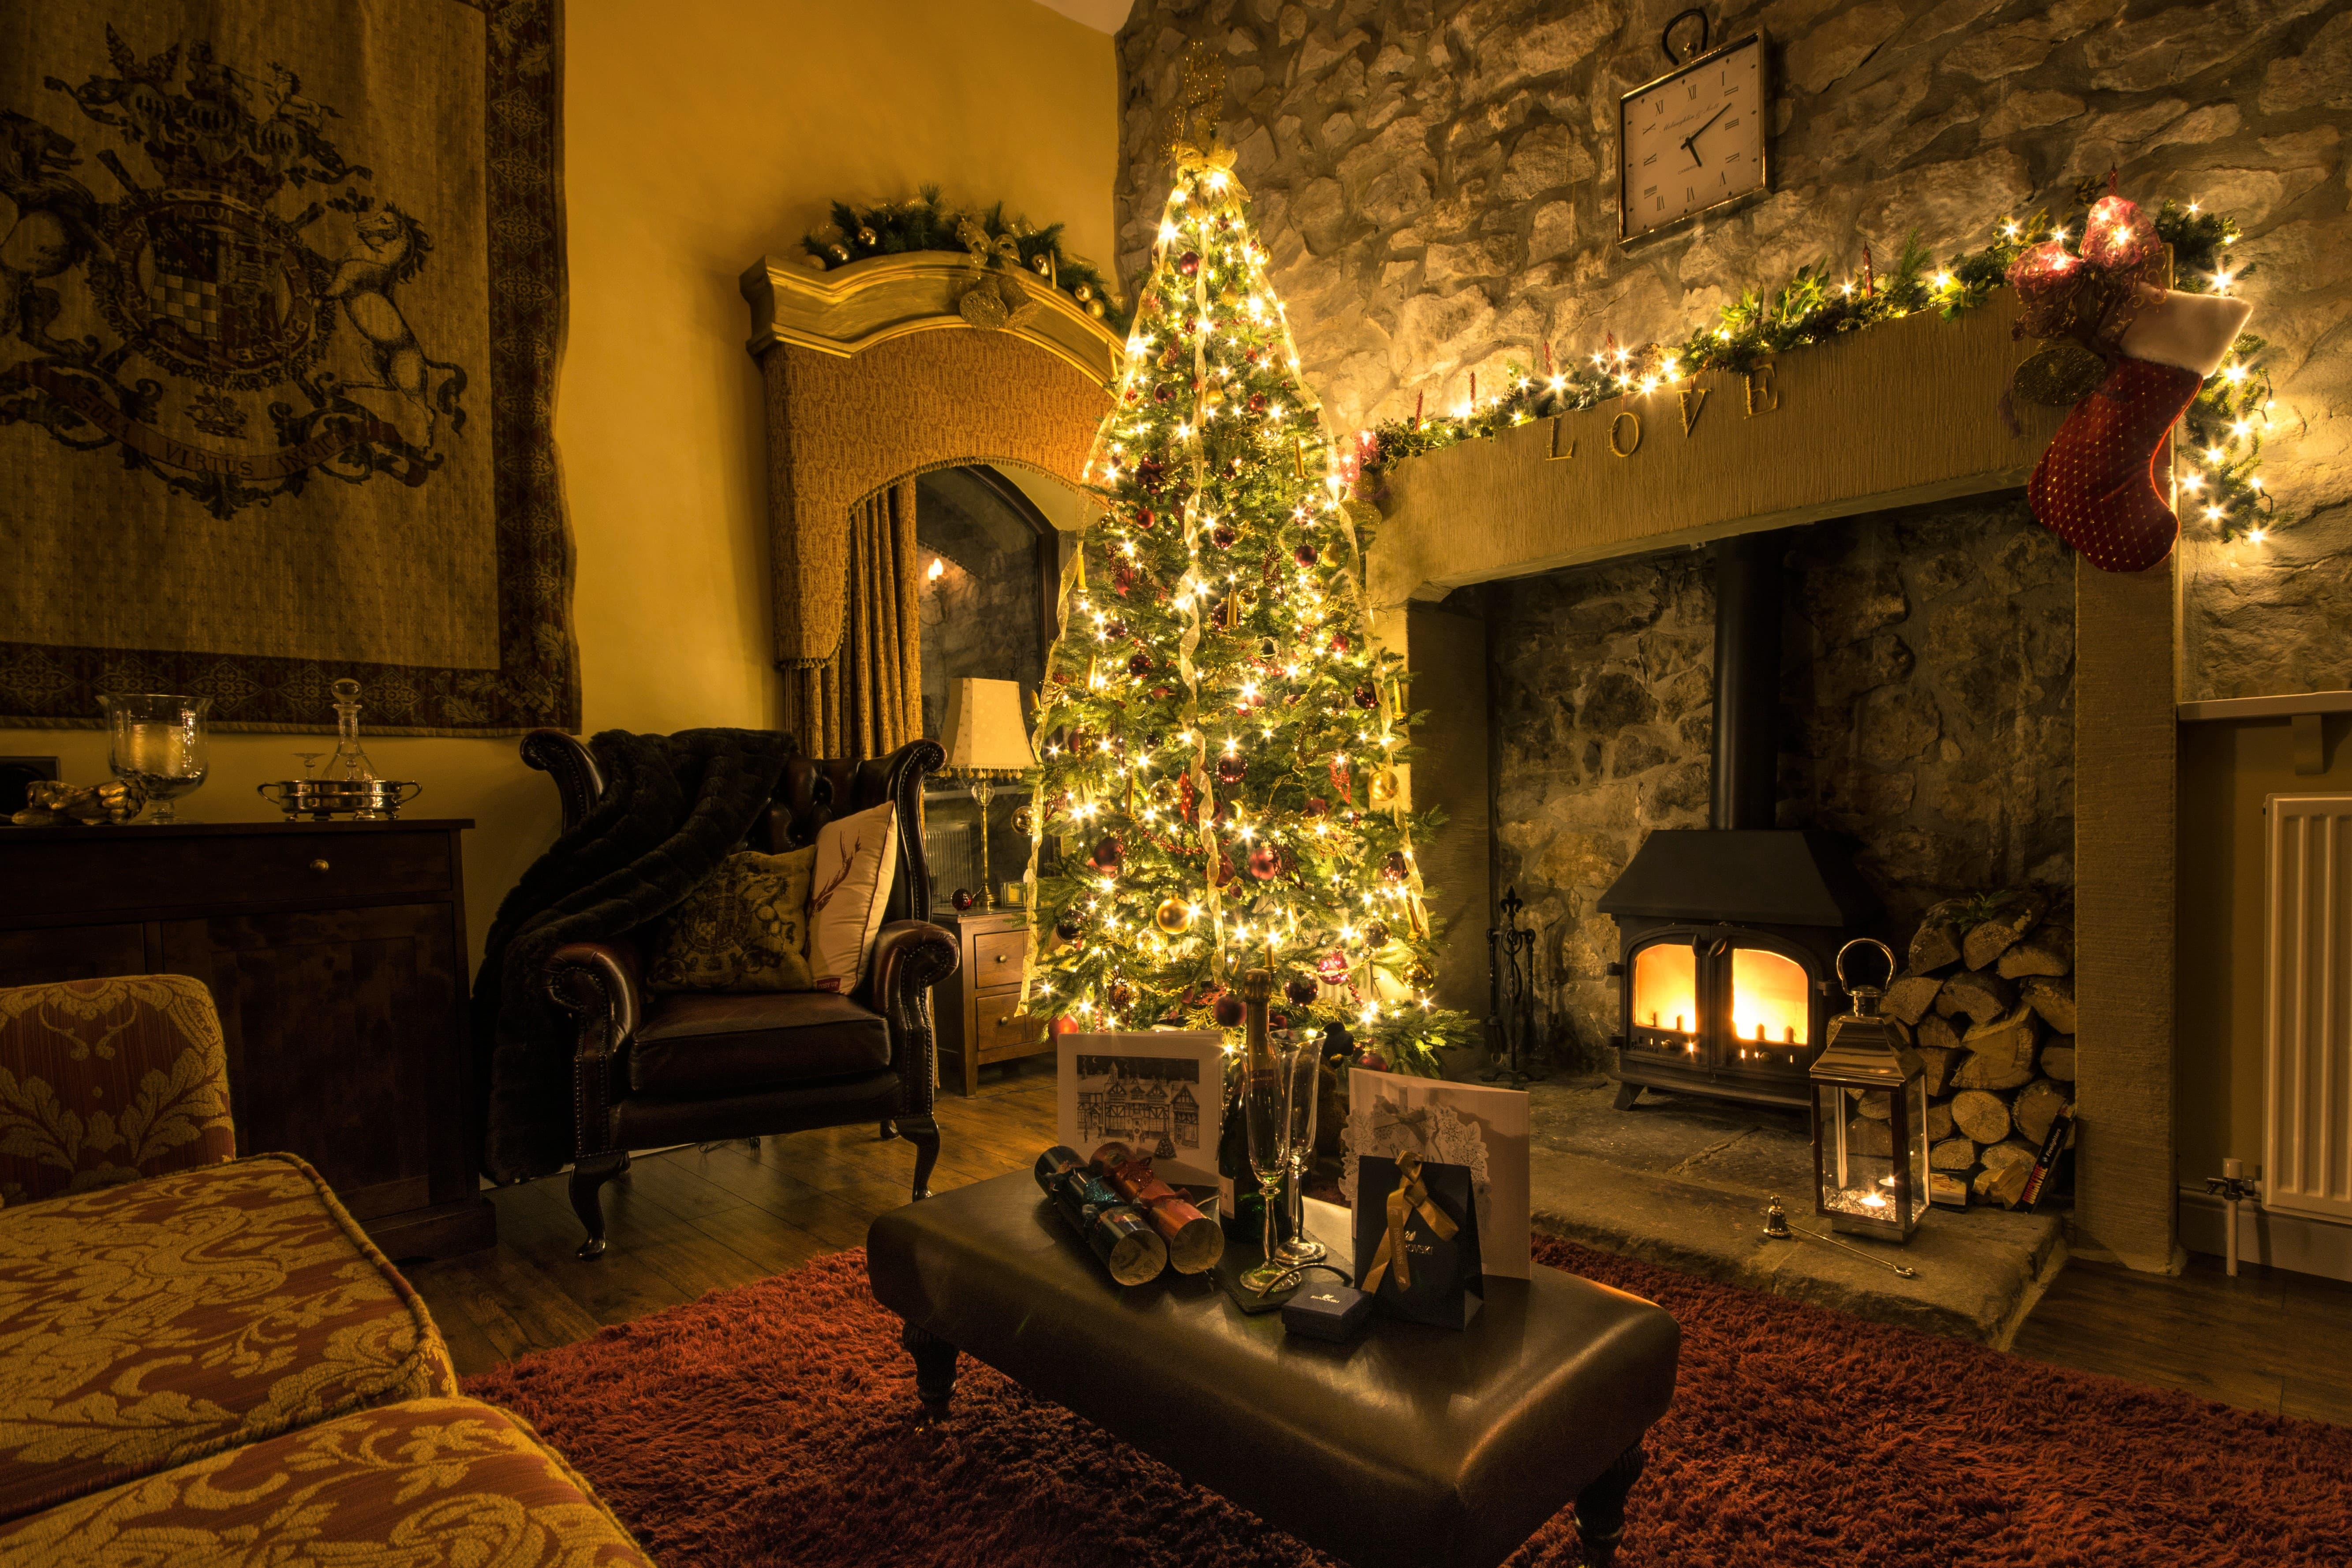 Cosy cottage with real fire and Christmas decorations